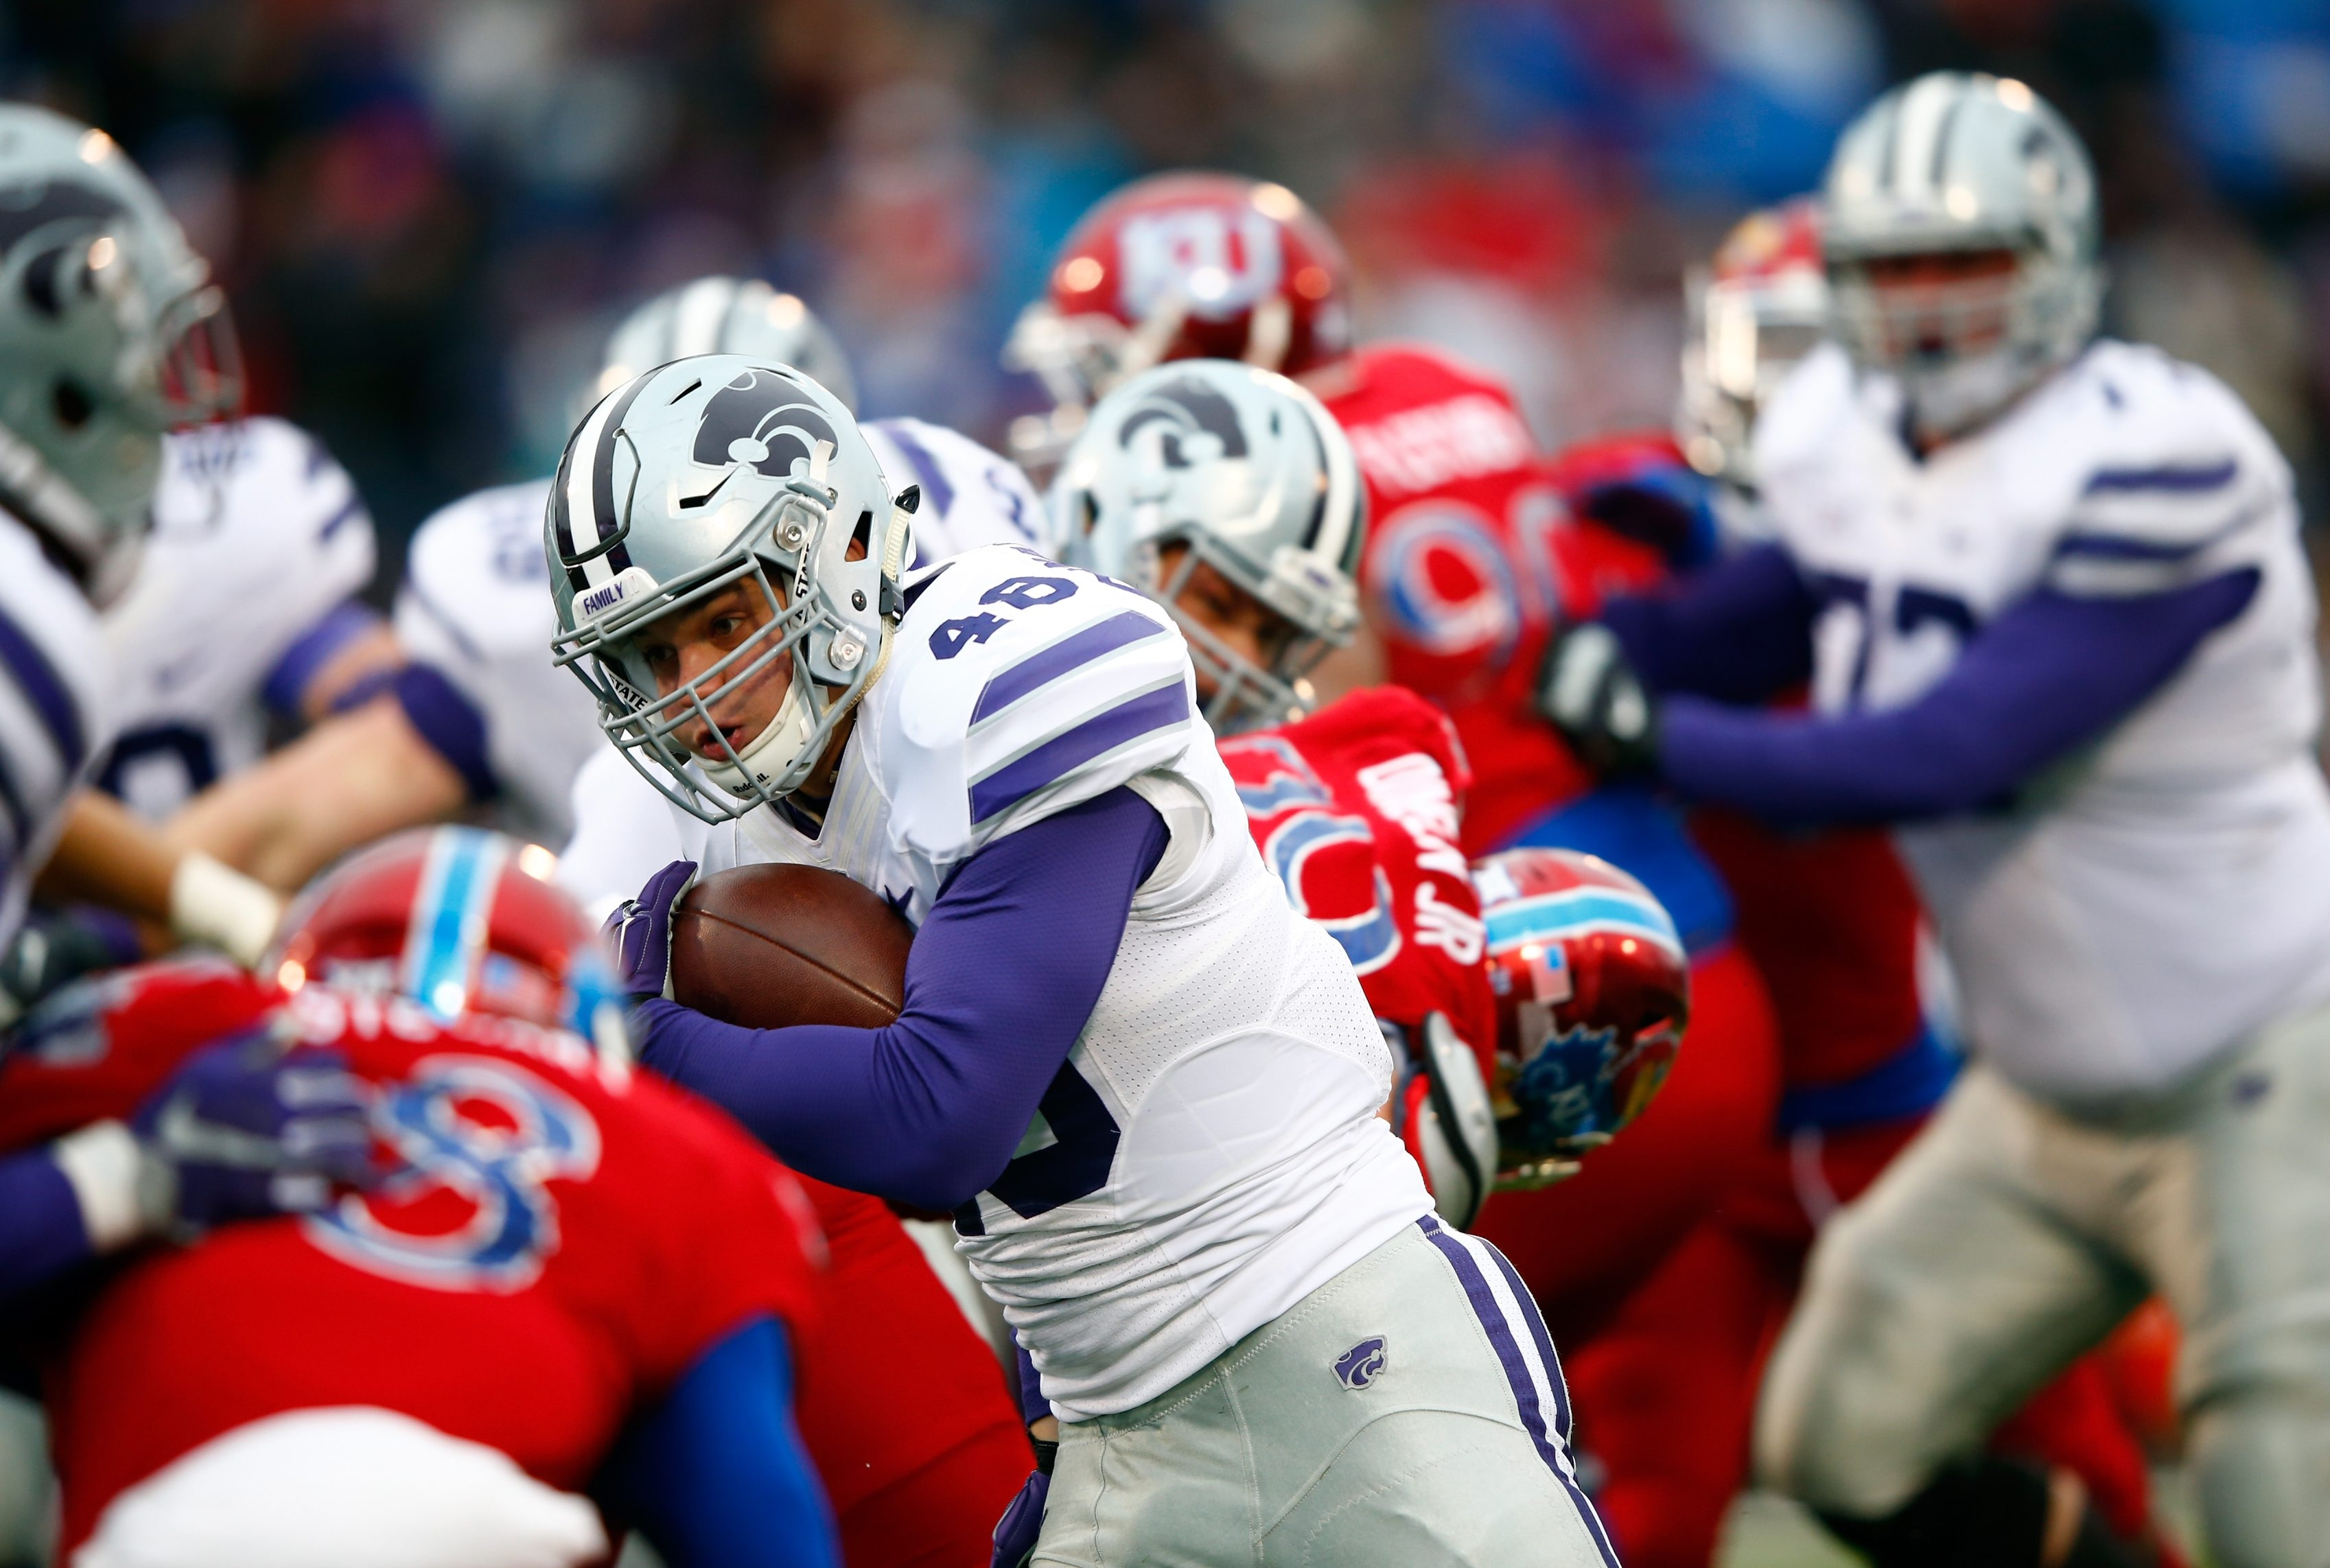 LAWRENCE, KS - NOVEMBER 28:  Fullback Glenn Gronkowski #48 of the Kansas State Wildcats carries the ball into the end zone during the game against the Kansas Jayhawks at Memorial Stadium on November 28, 2015 in Lawrence, Kansas.  (Photo by Jamie Squire/Getty Images)